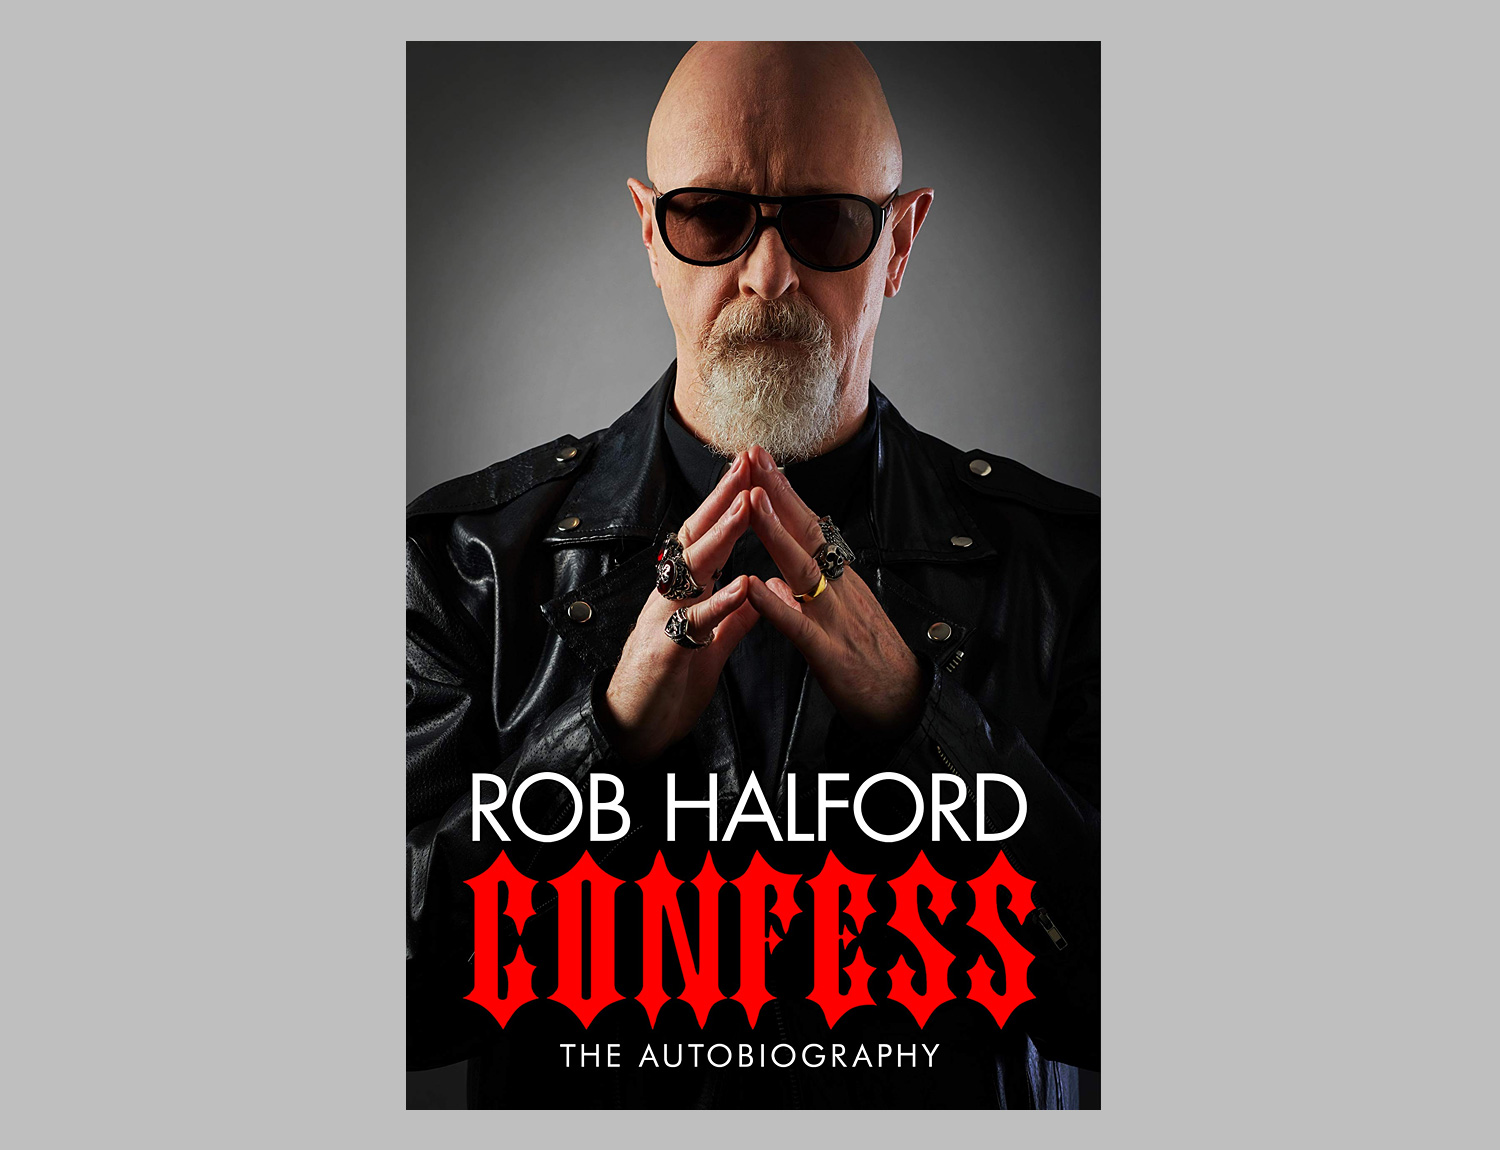 Confess: The Autobiography of Rob Halford at werd.com